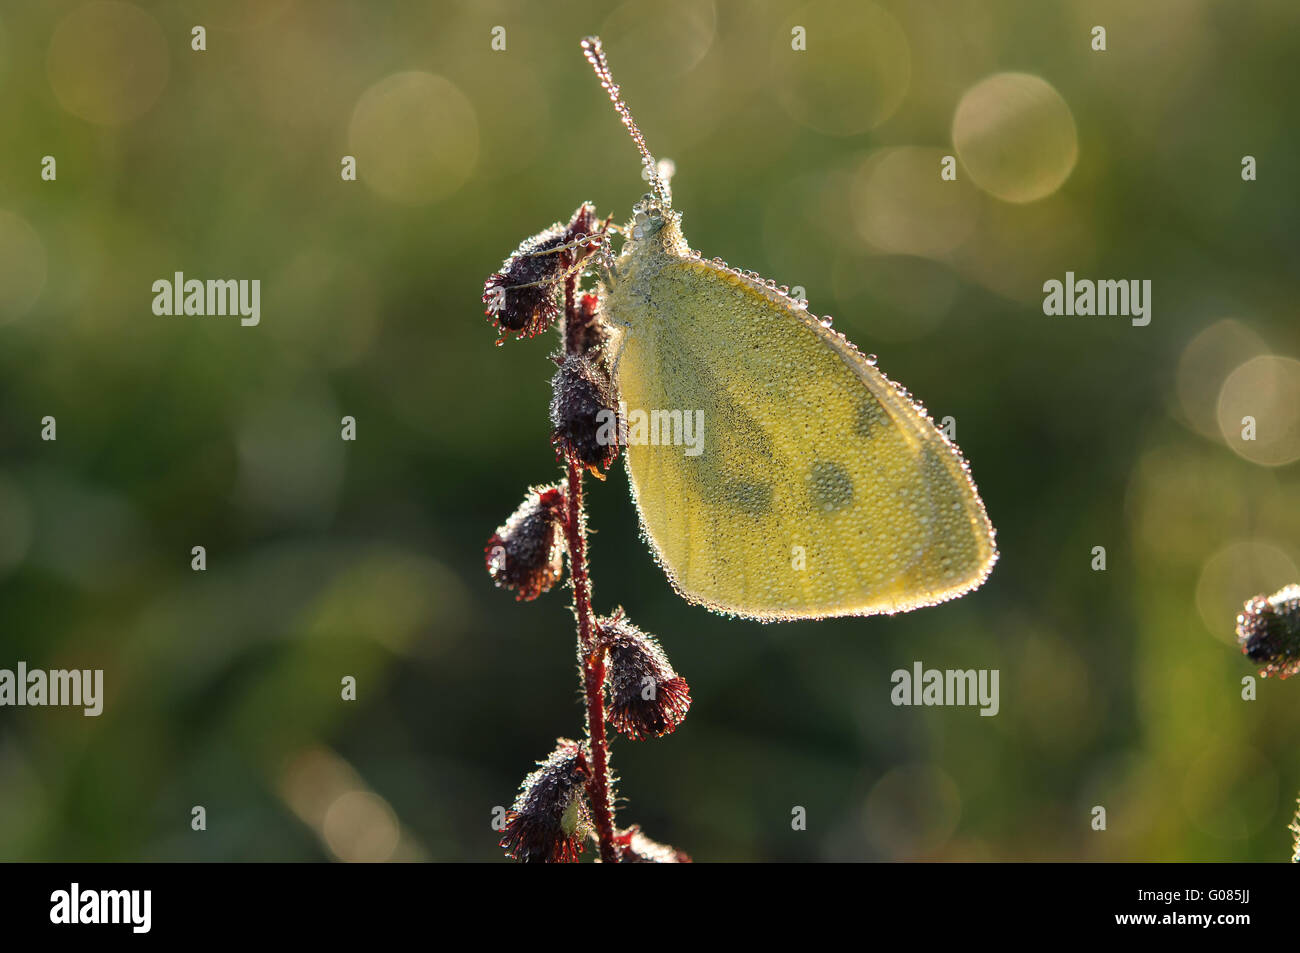 cabbage butterfly - Stock Image